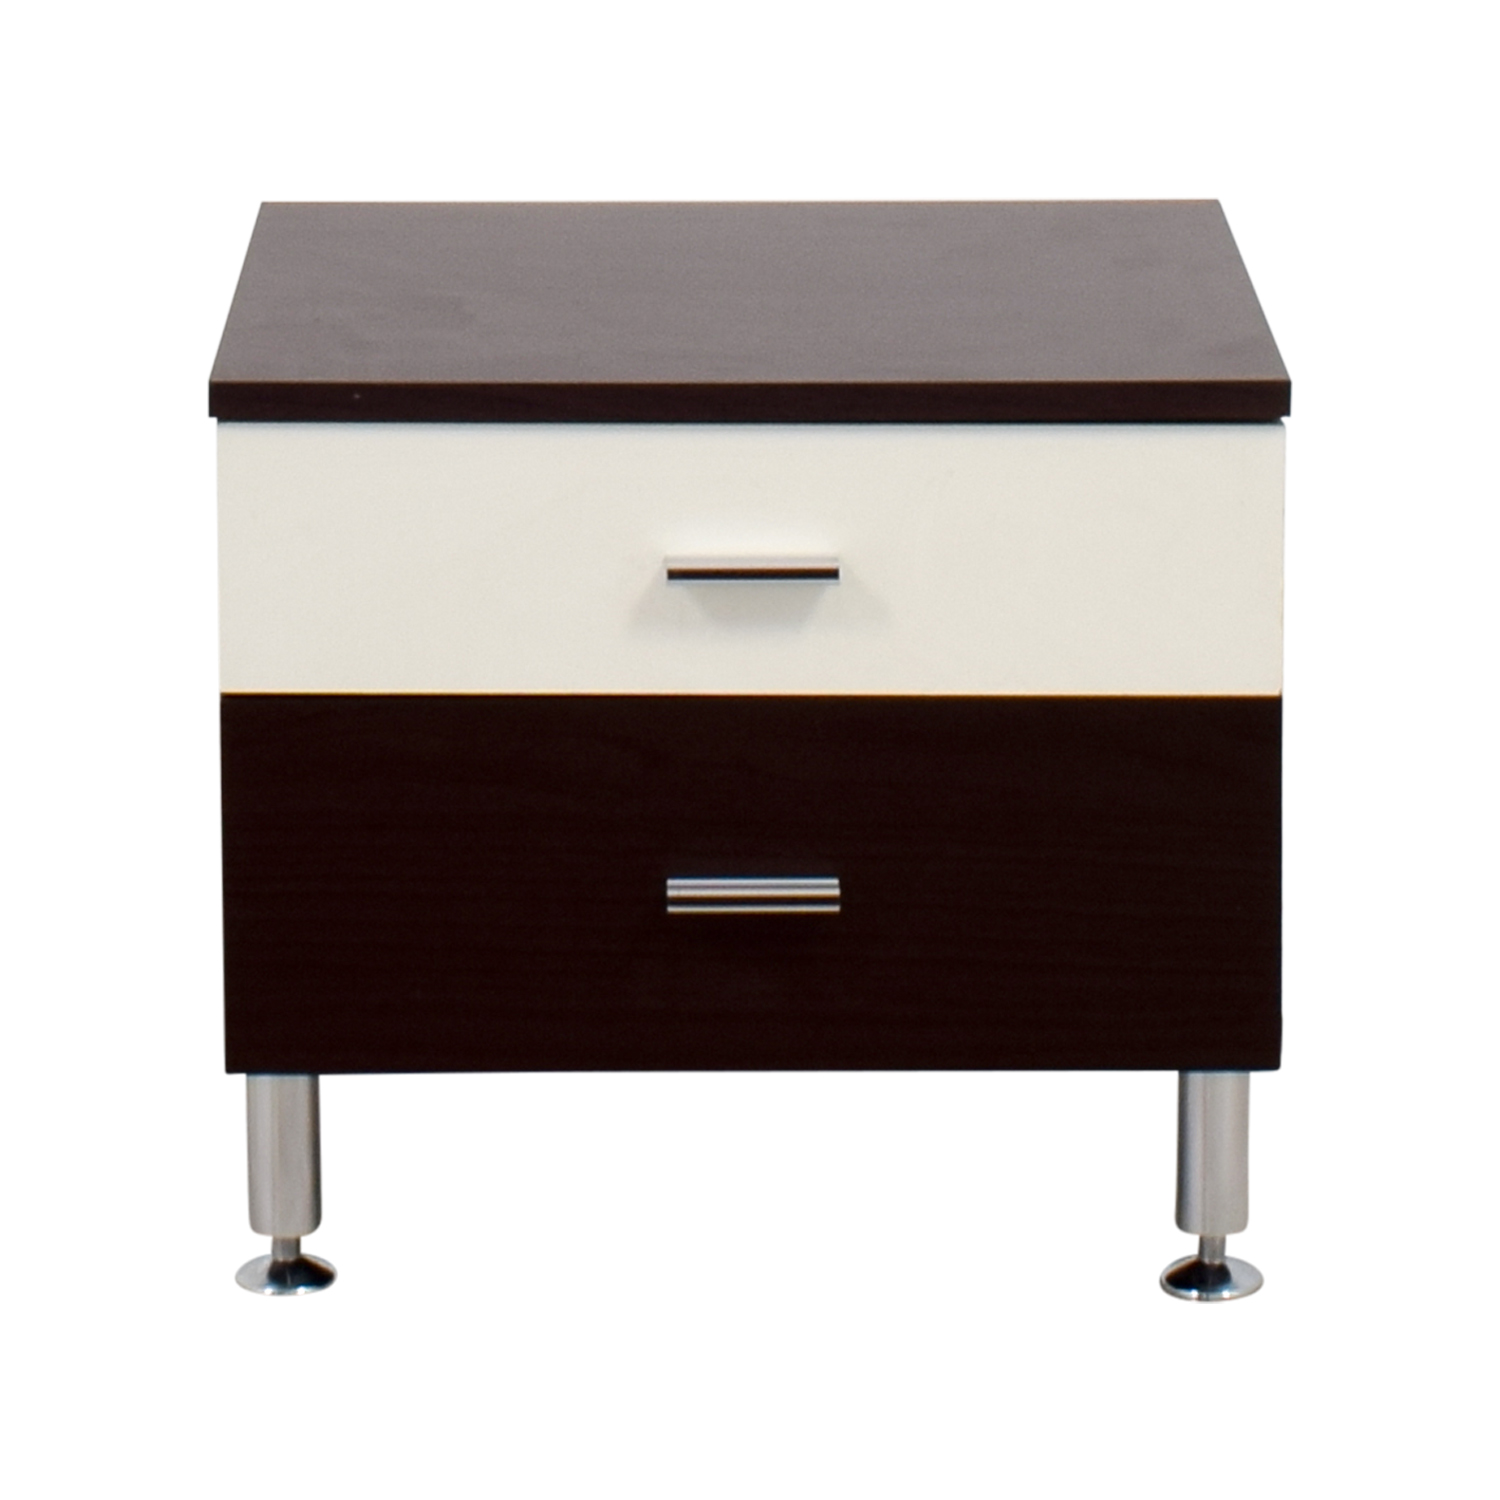 Tri-Colored Two-Drawer Nightstand Tables